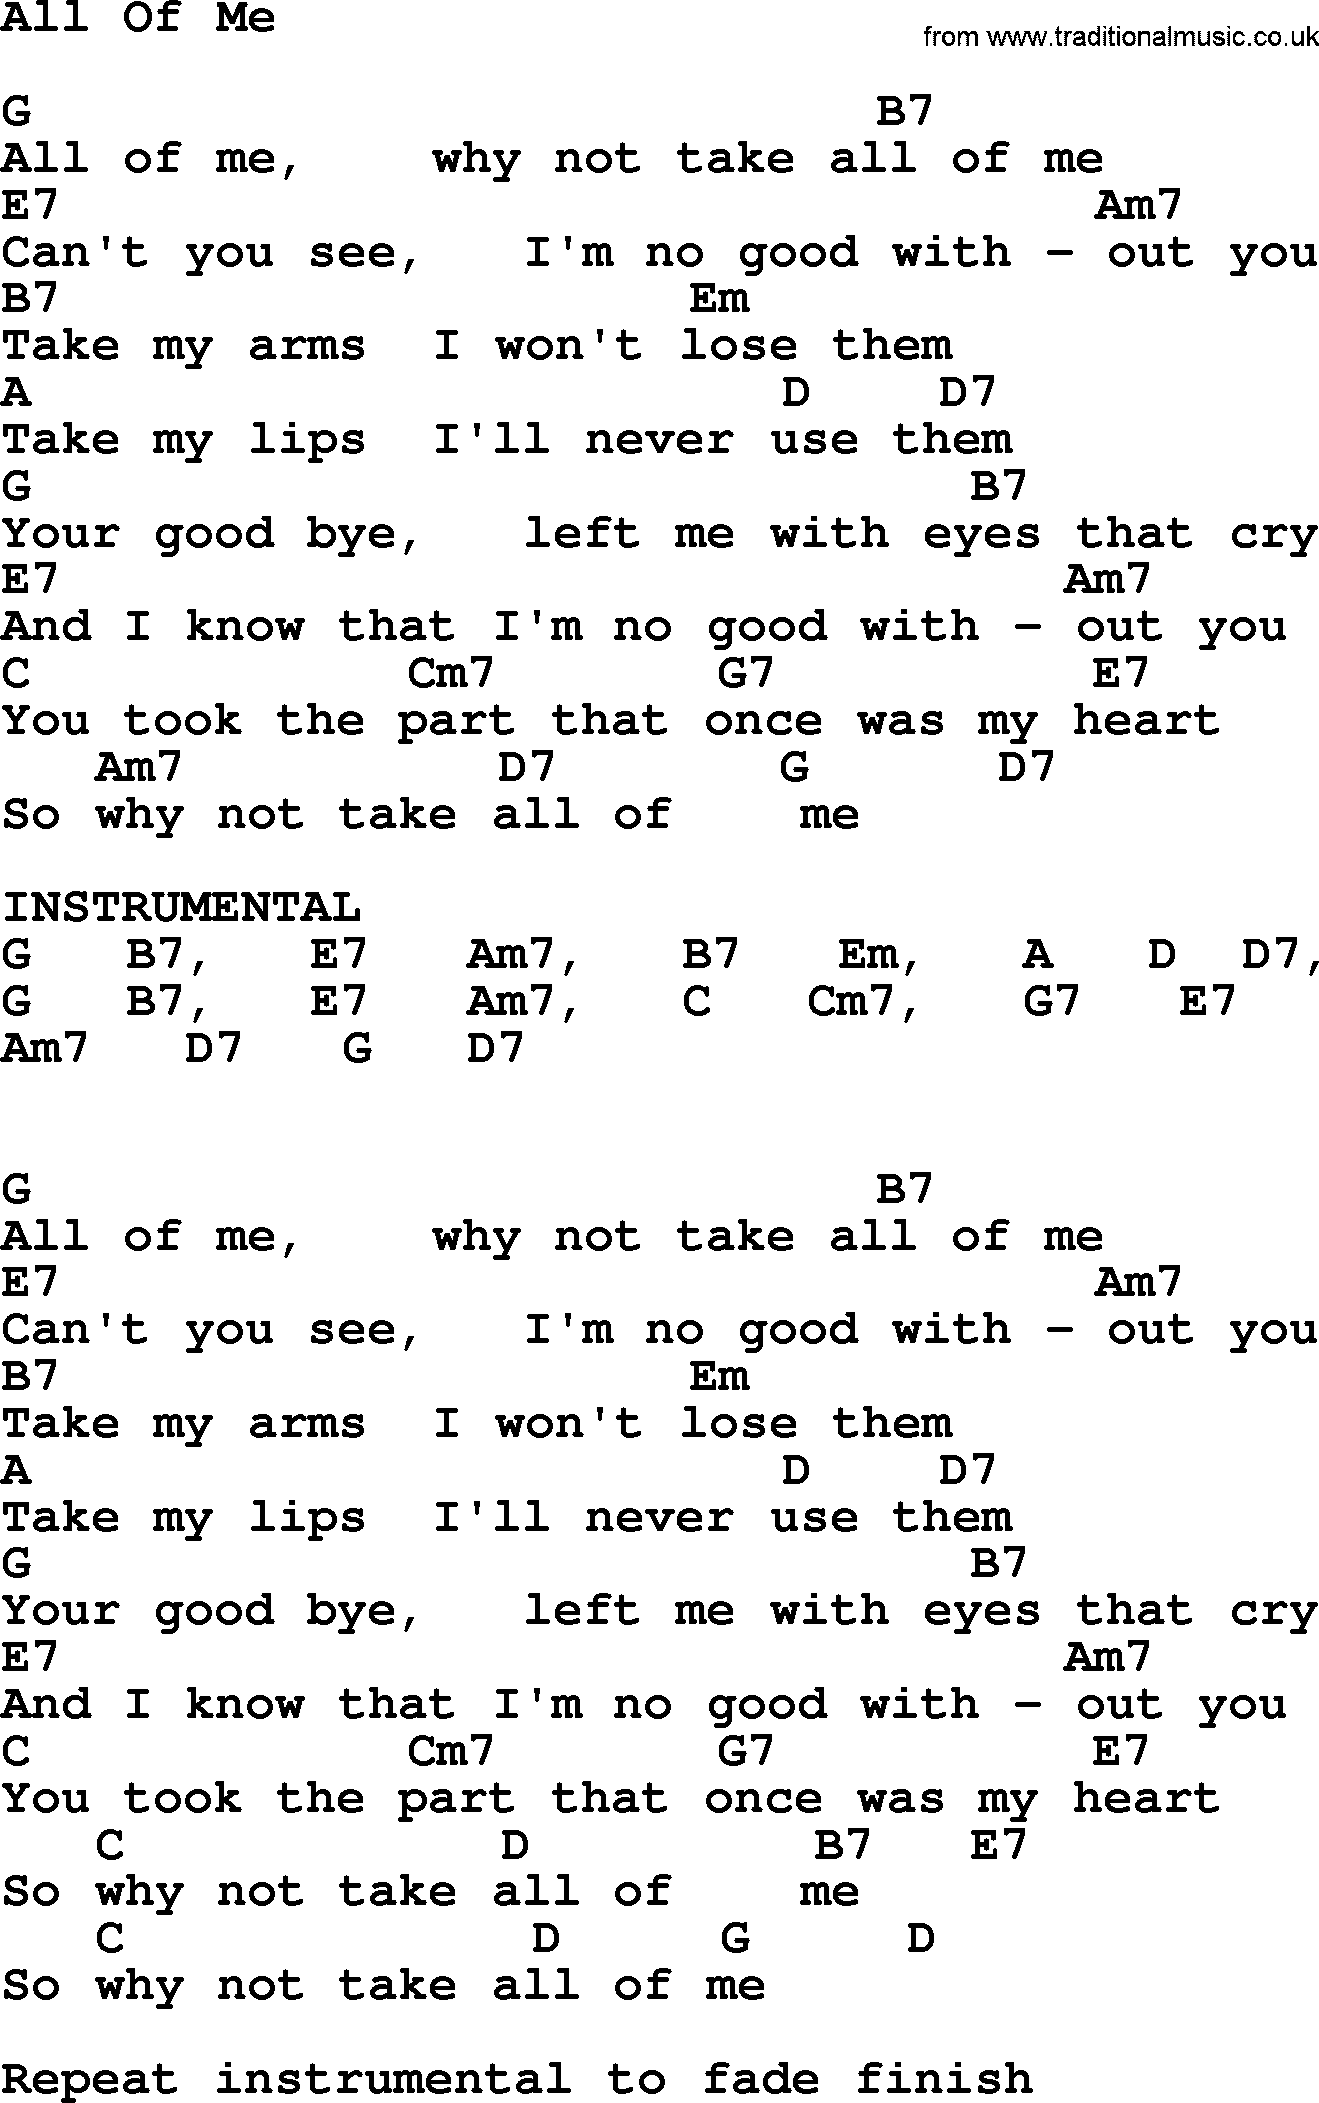 all of me chords - 736×1173